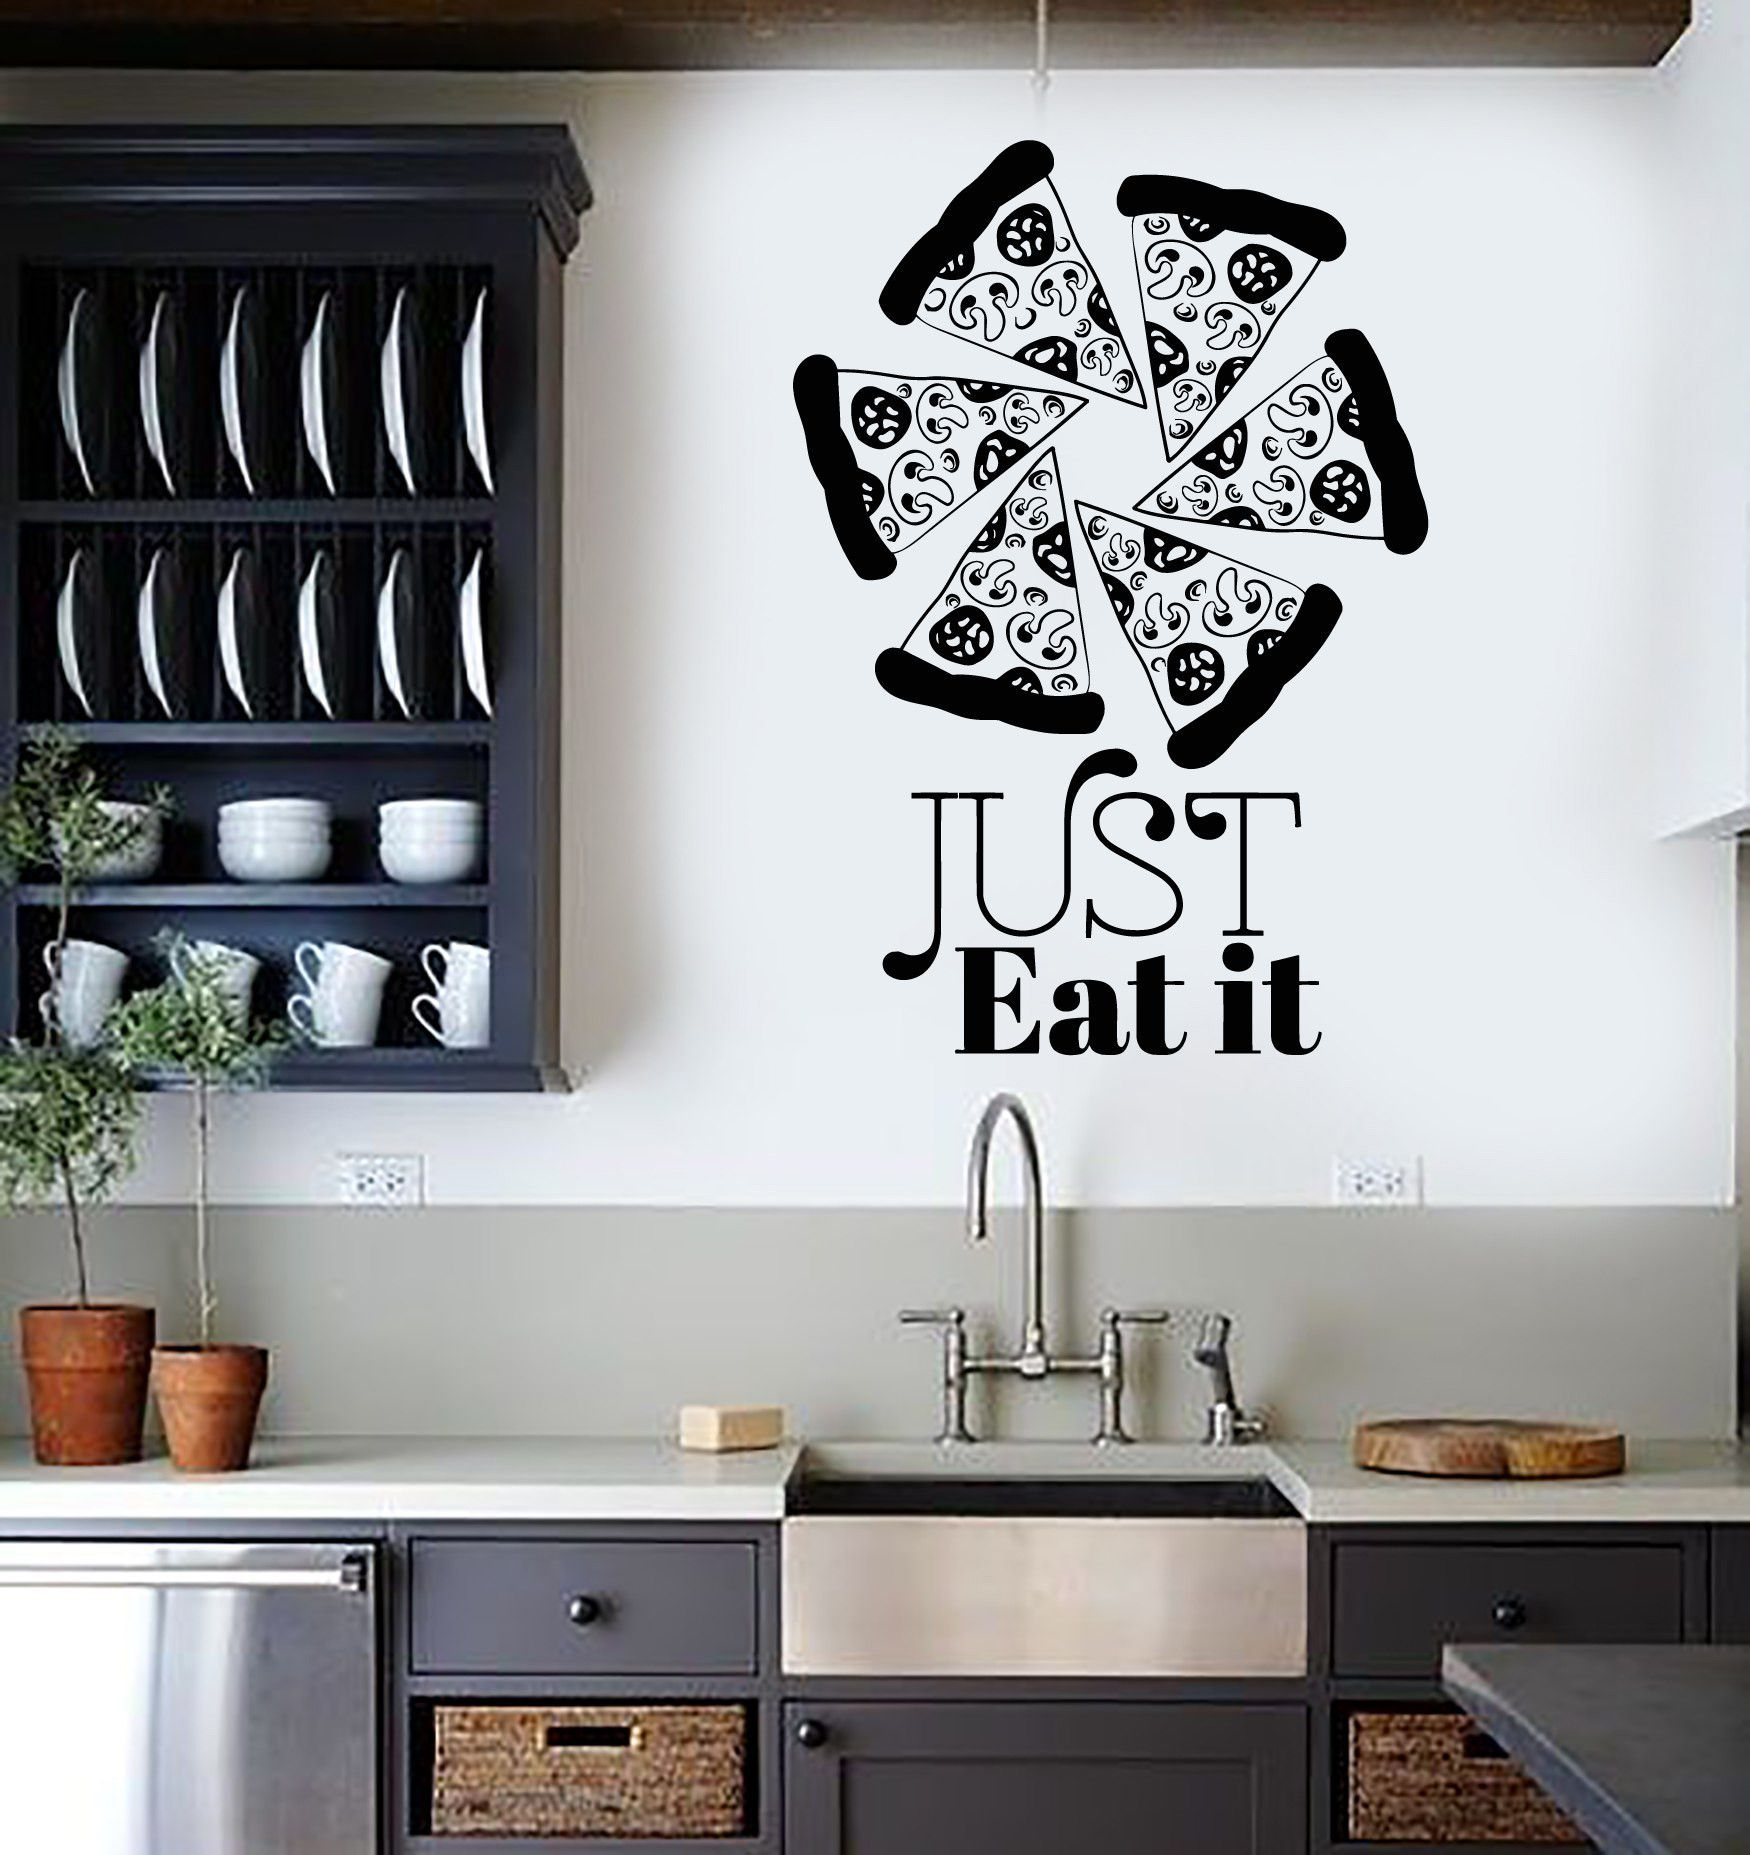 Vinyl wall decal pizzeria art mural pizza funny quote food stickers